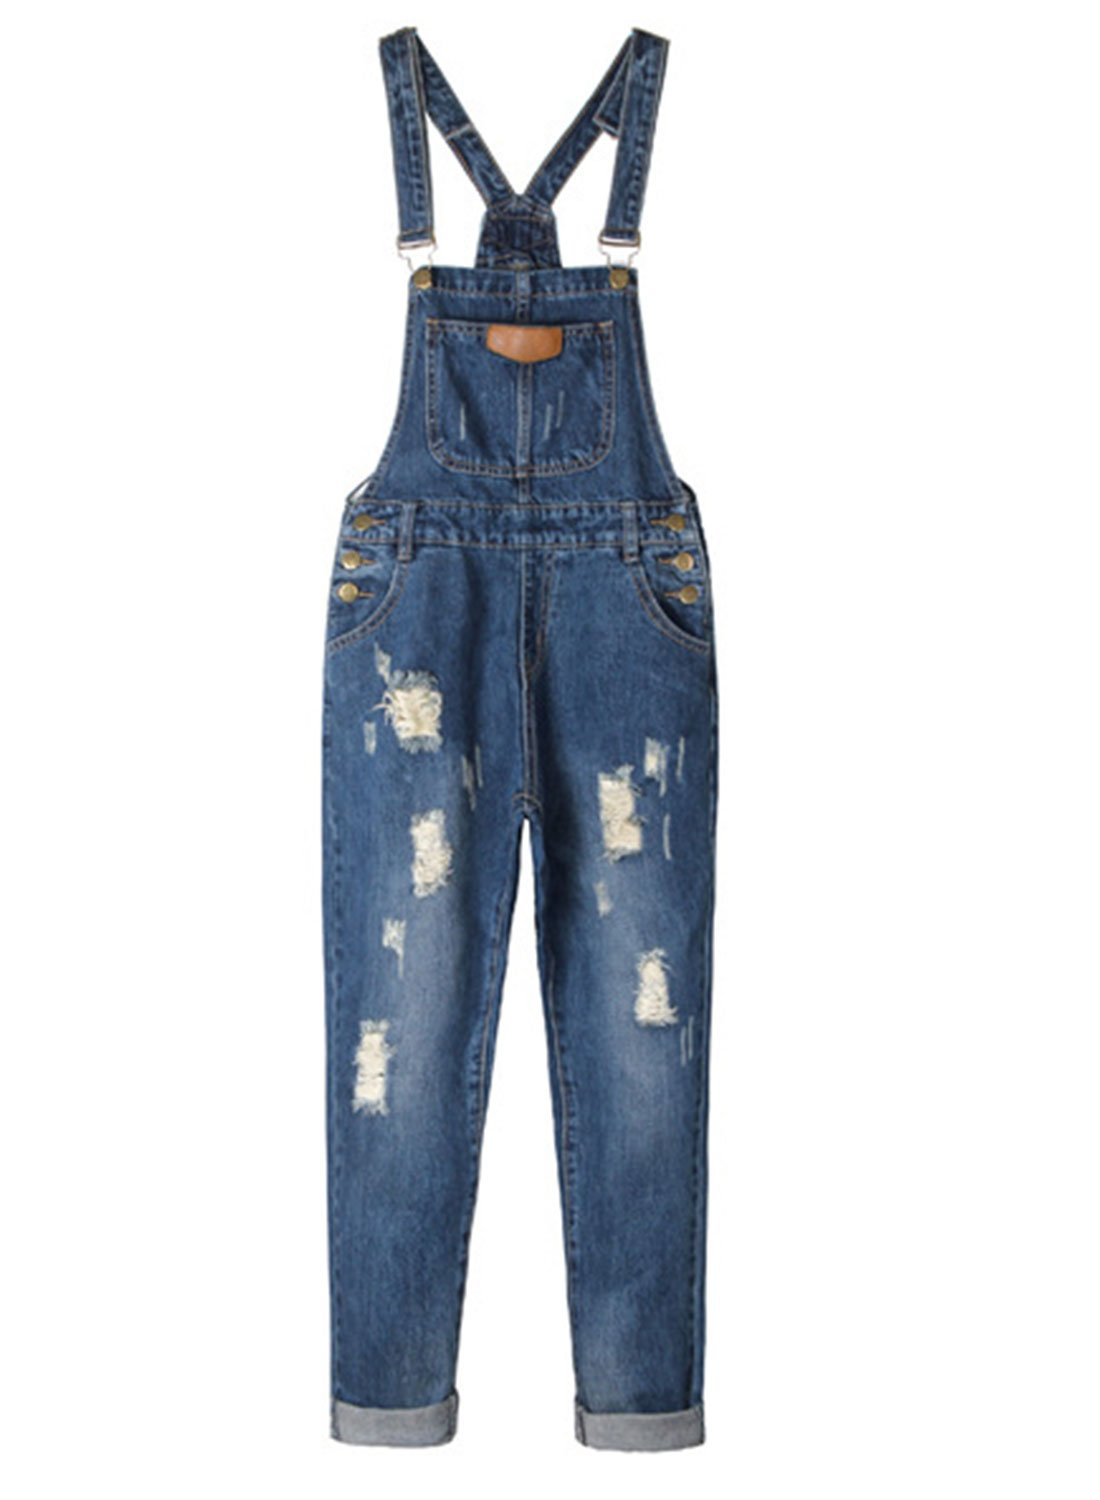 LEO BON Overalls for Women Loose Denim Jeans Rompers Jumpsuits Sleeveless Plus Size Overalls